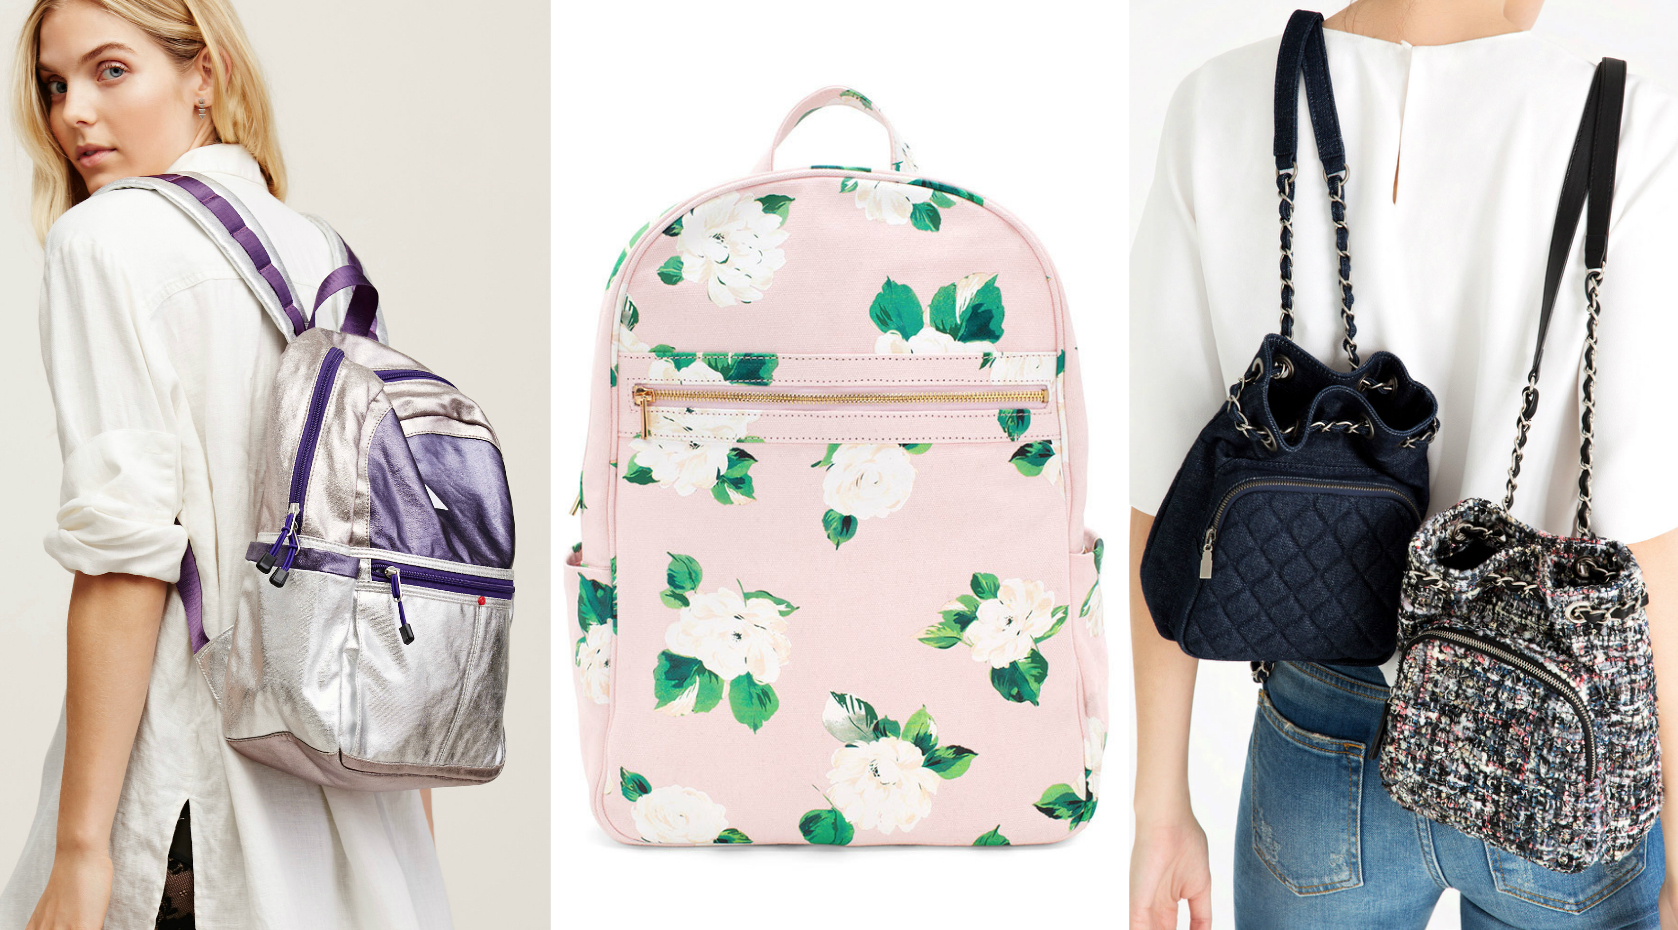 13 swoon-worthy backpacks for those who hate carrying purses